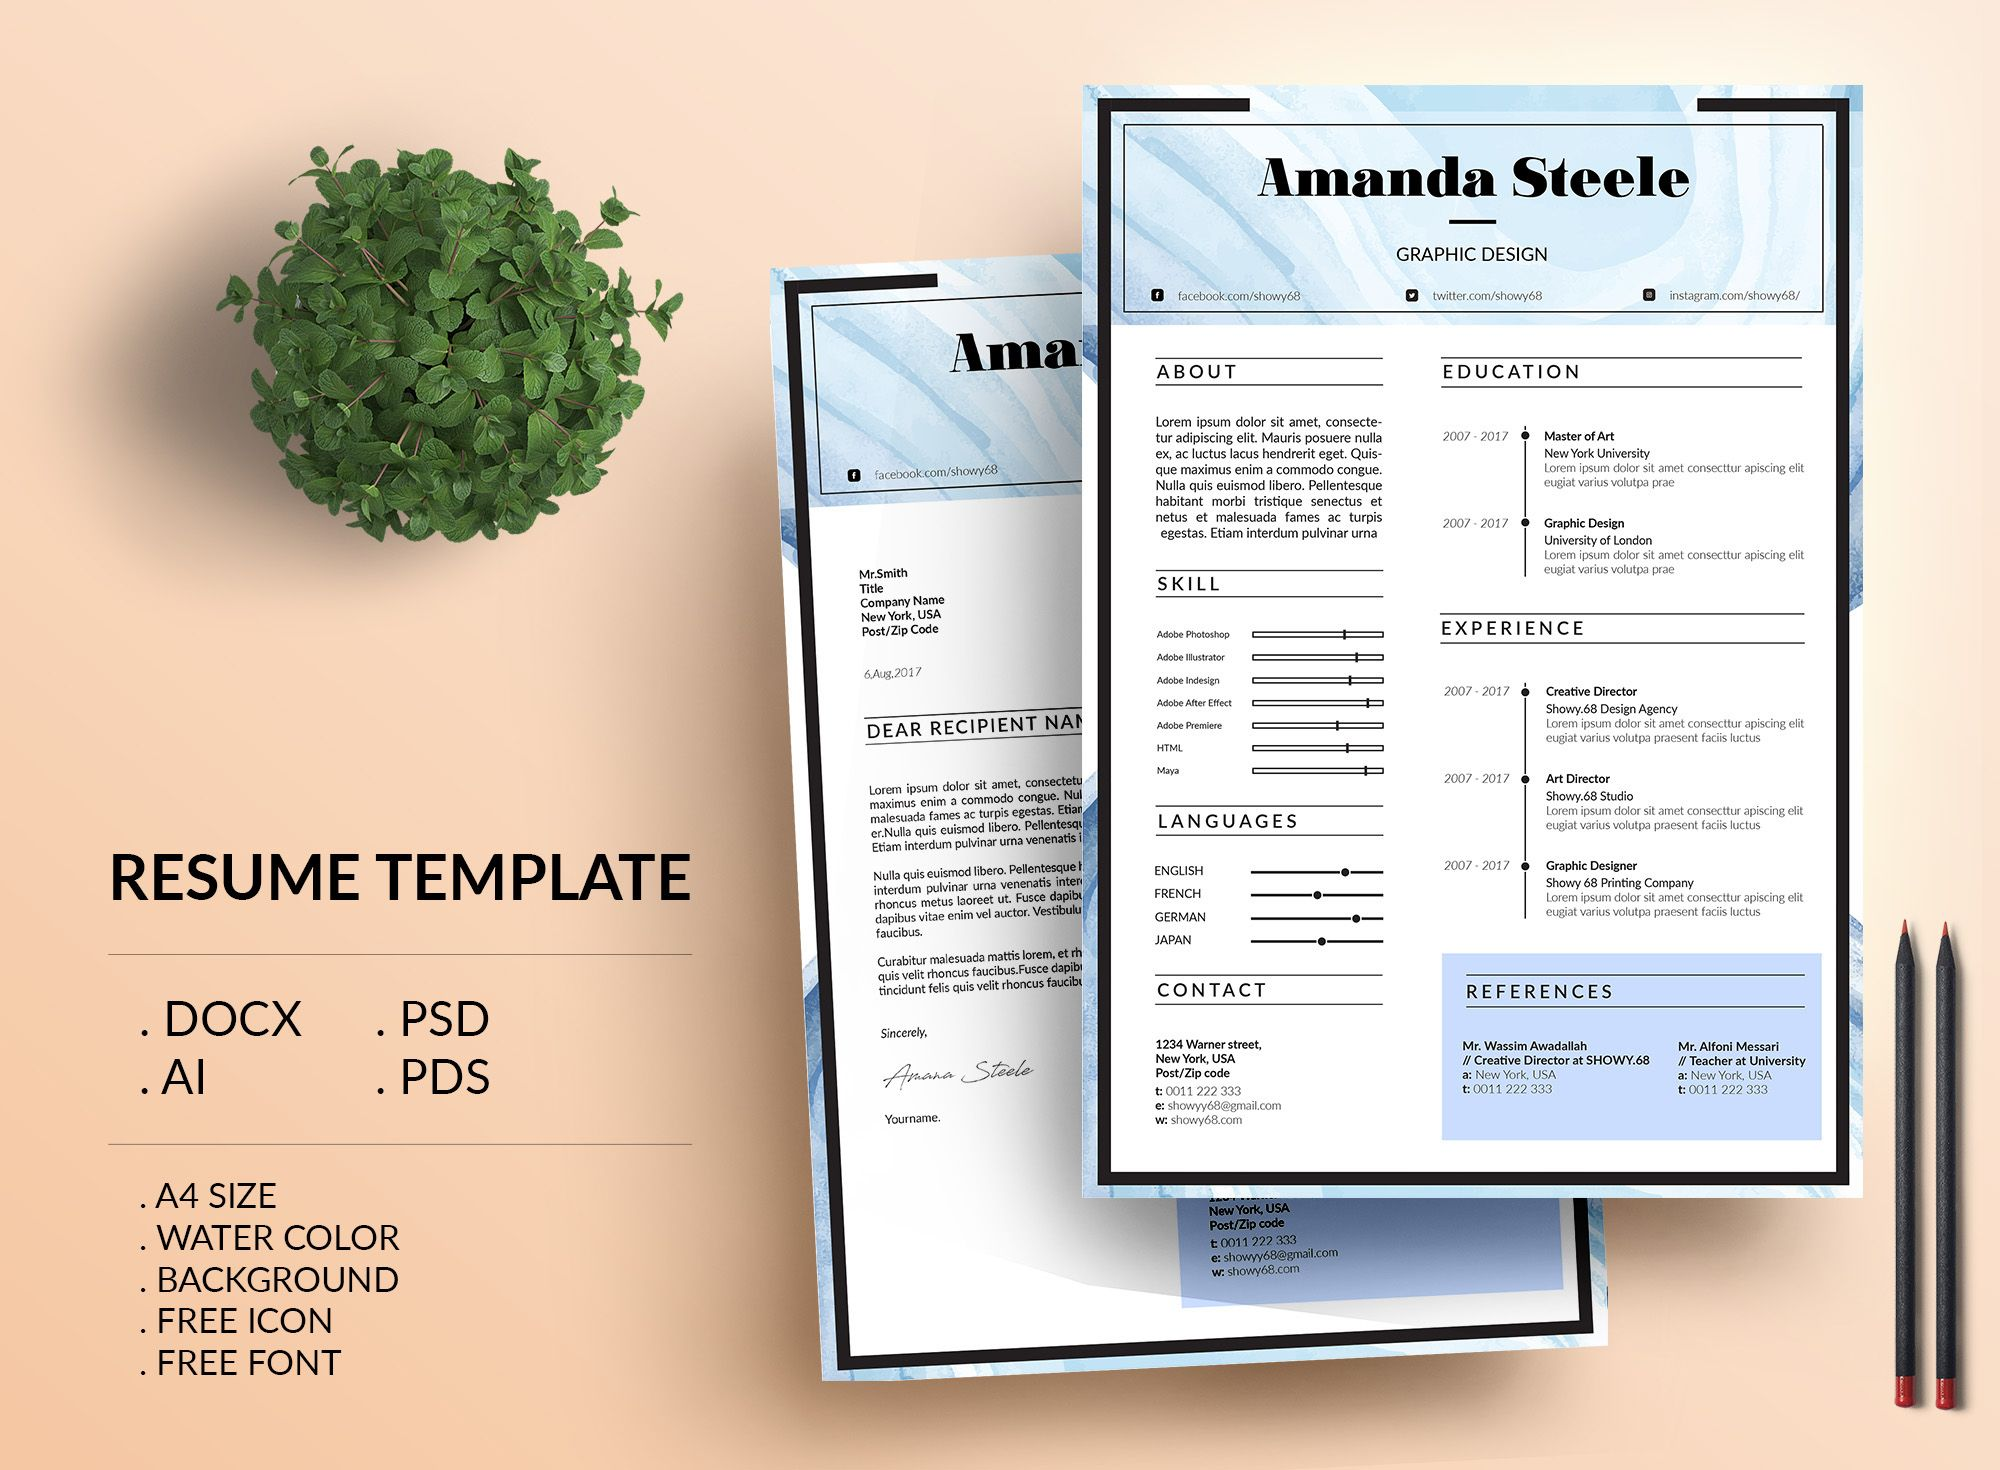 Word Cv Templates 2007%0A Check out my  Behance project   u   cWater color Resume Template   CV Template